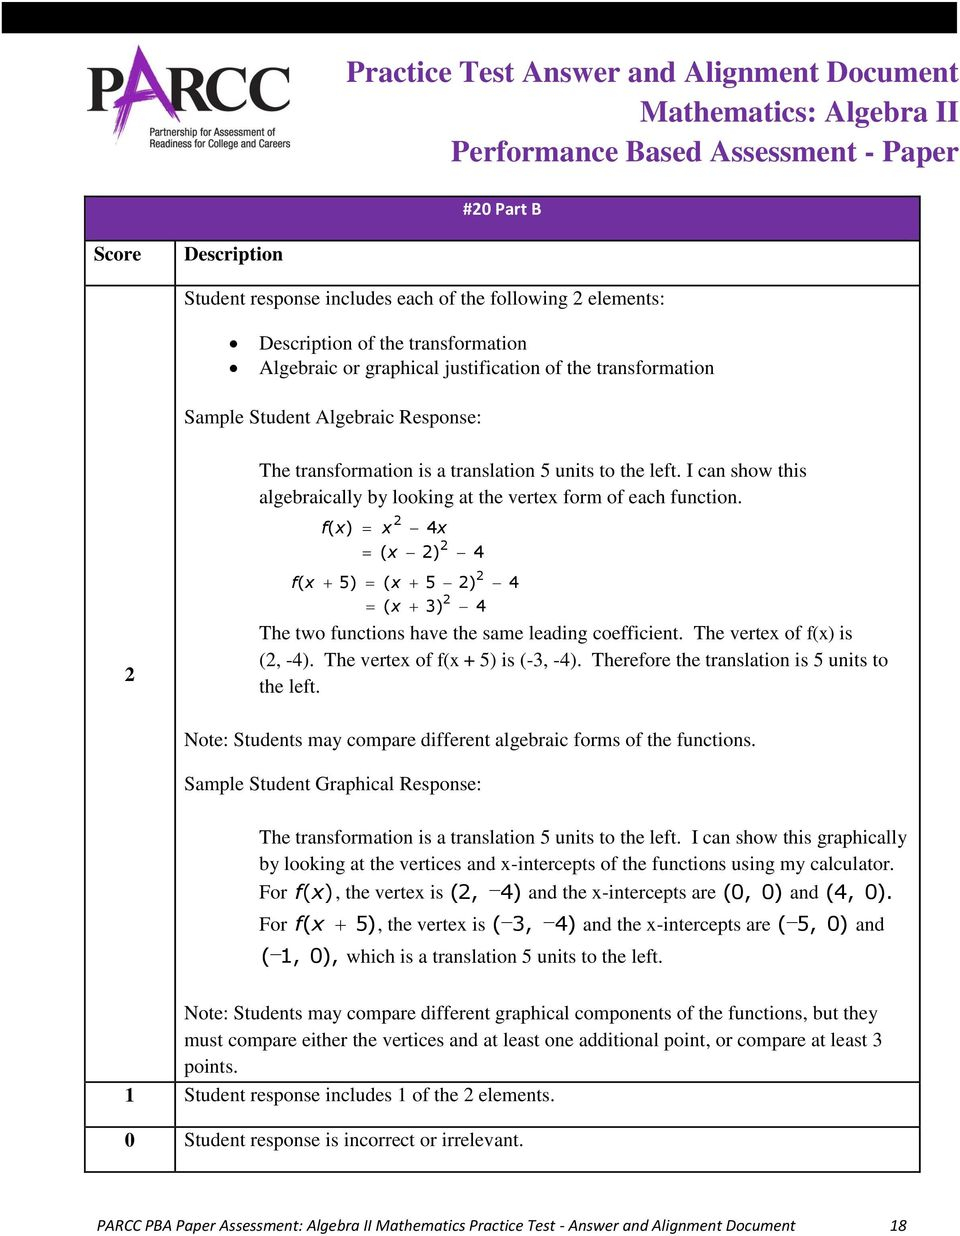 Practice Test Answer And Alignment Document Mathematics